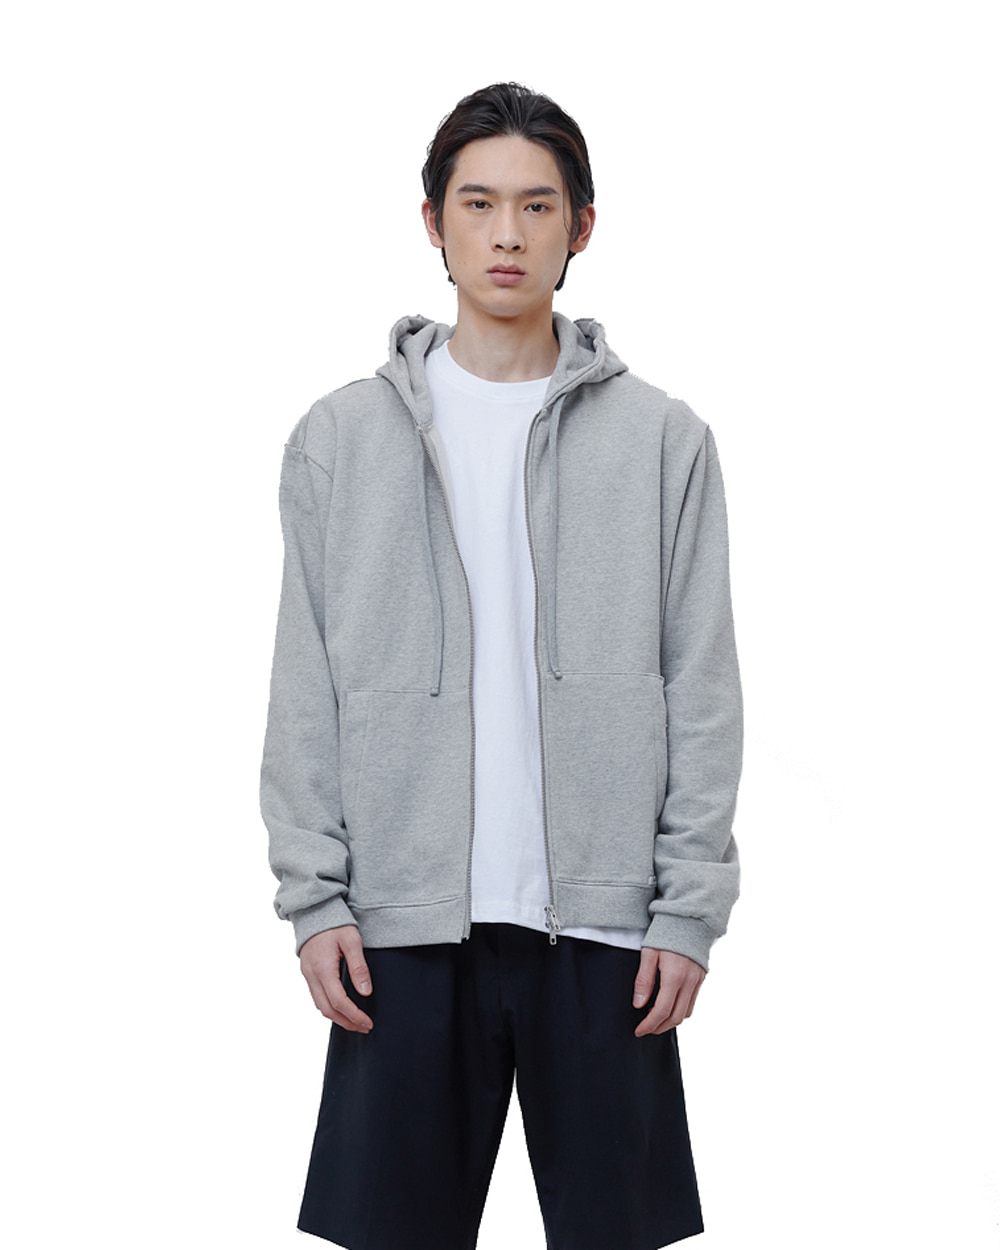 에이카화이트 FINEST COTTON ZIP UP HOODIE (Grey)